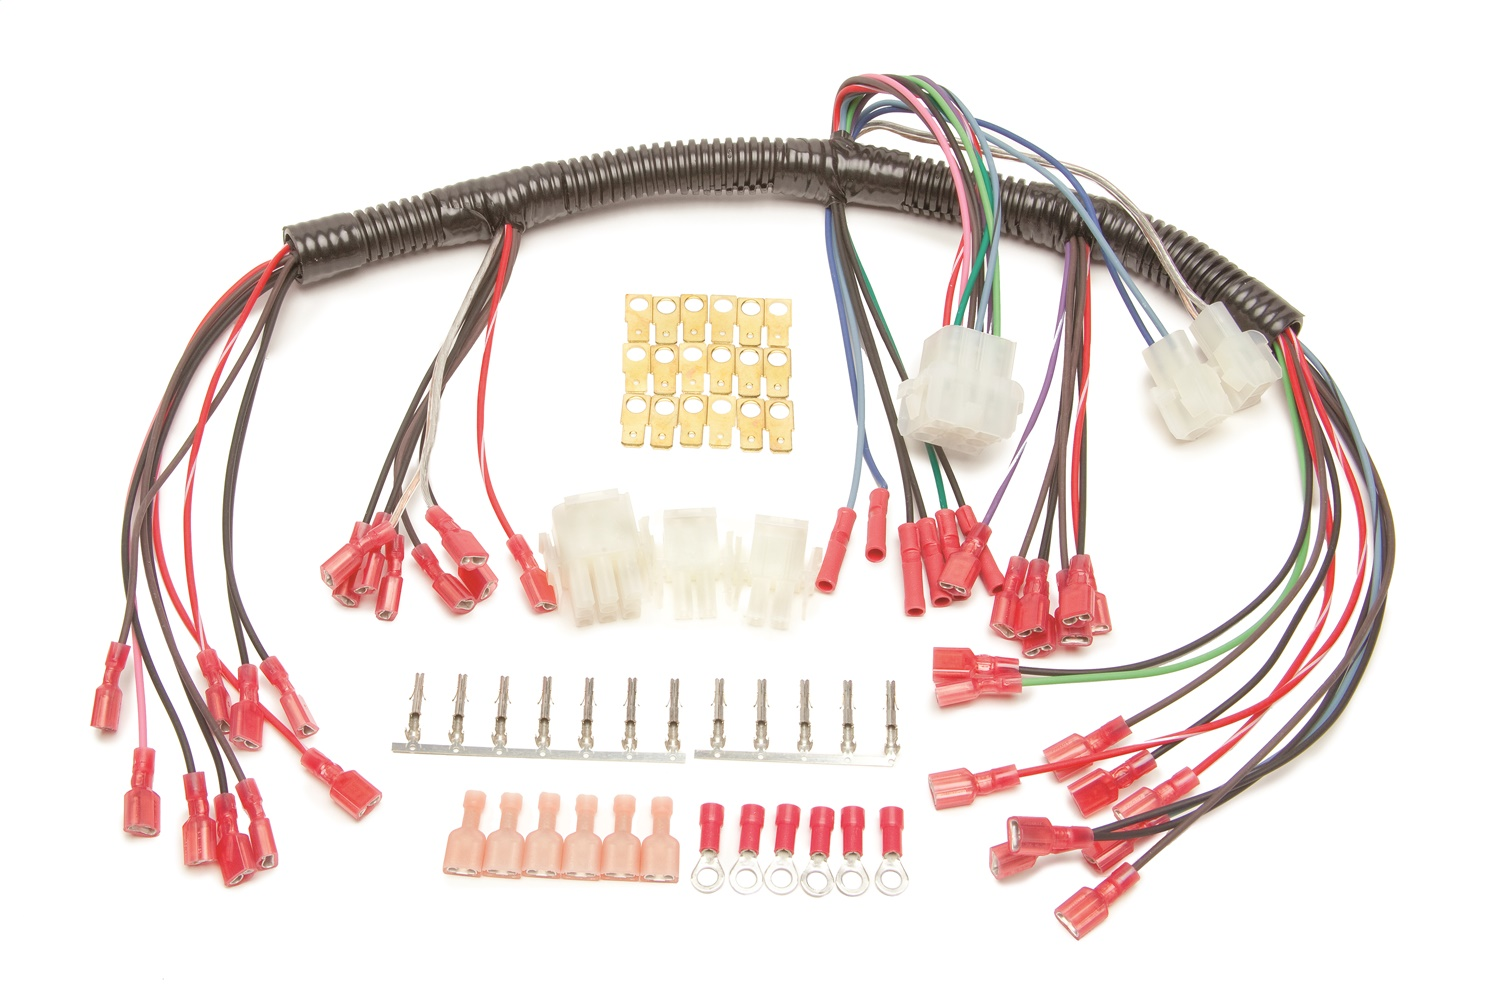 Painless Wiring 30302 Universal Autometer Gauge Dash Wire Harness w on 1987 chevy dash harness, 1967 chevrolet van dash harness, dash gauges, dash radio, 1971 chevelle dash harness, chevy suburban wire harness, 99 firebird dash harness,